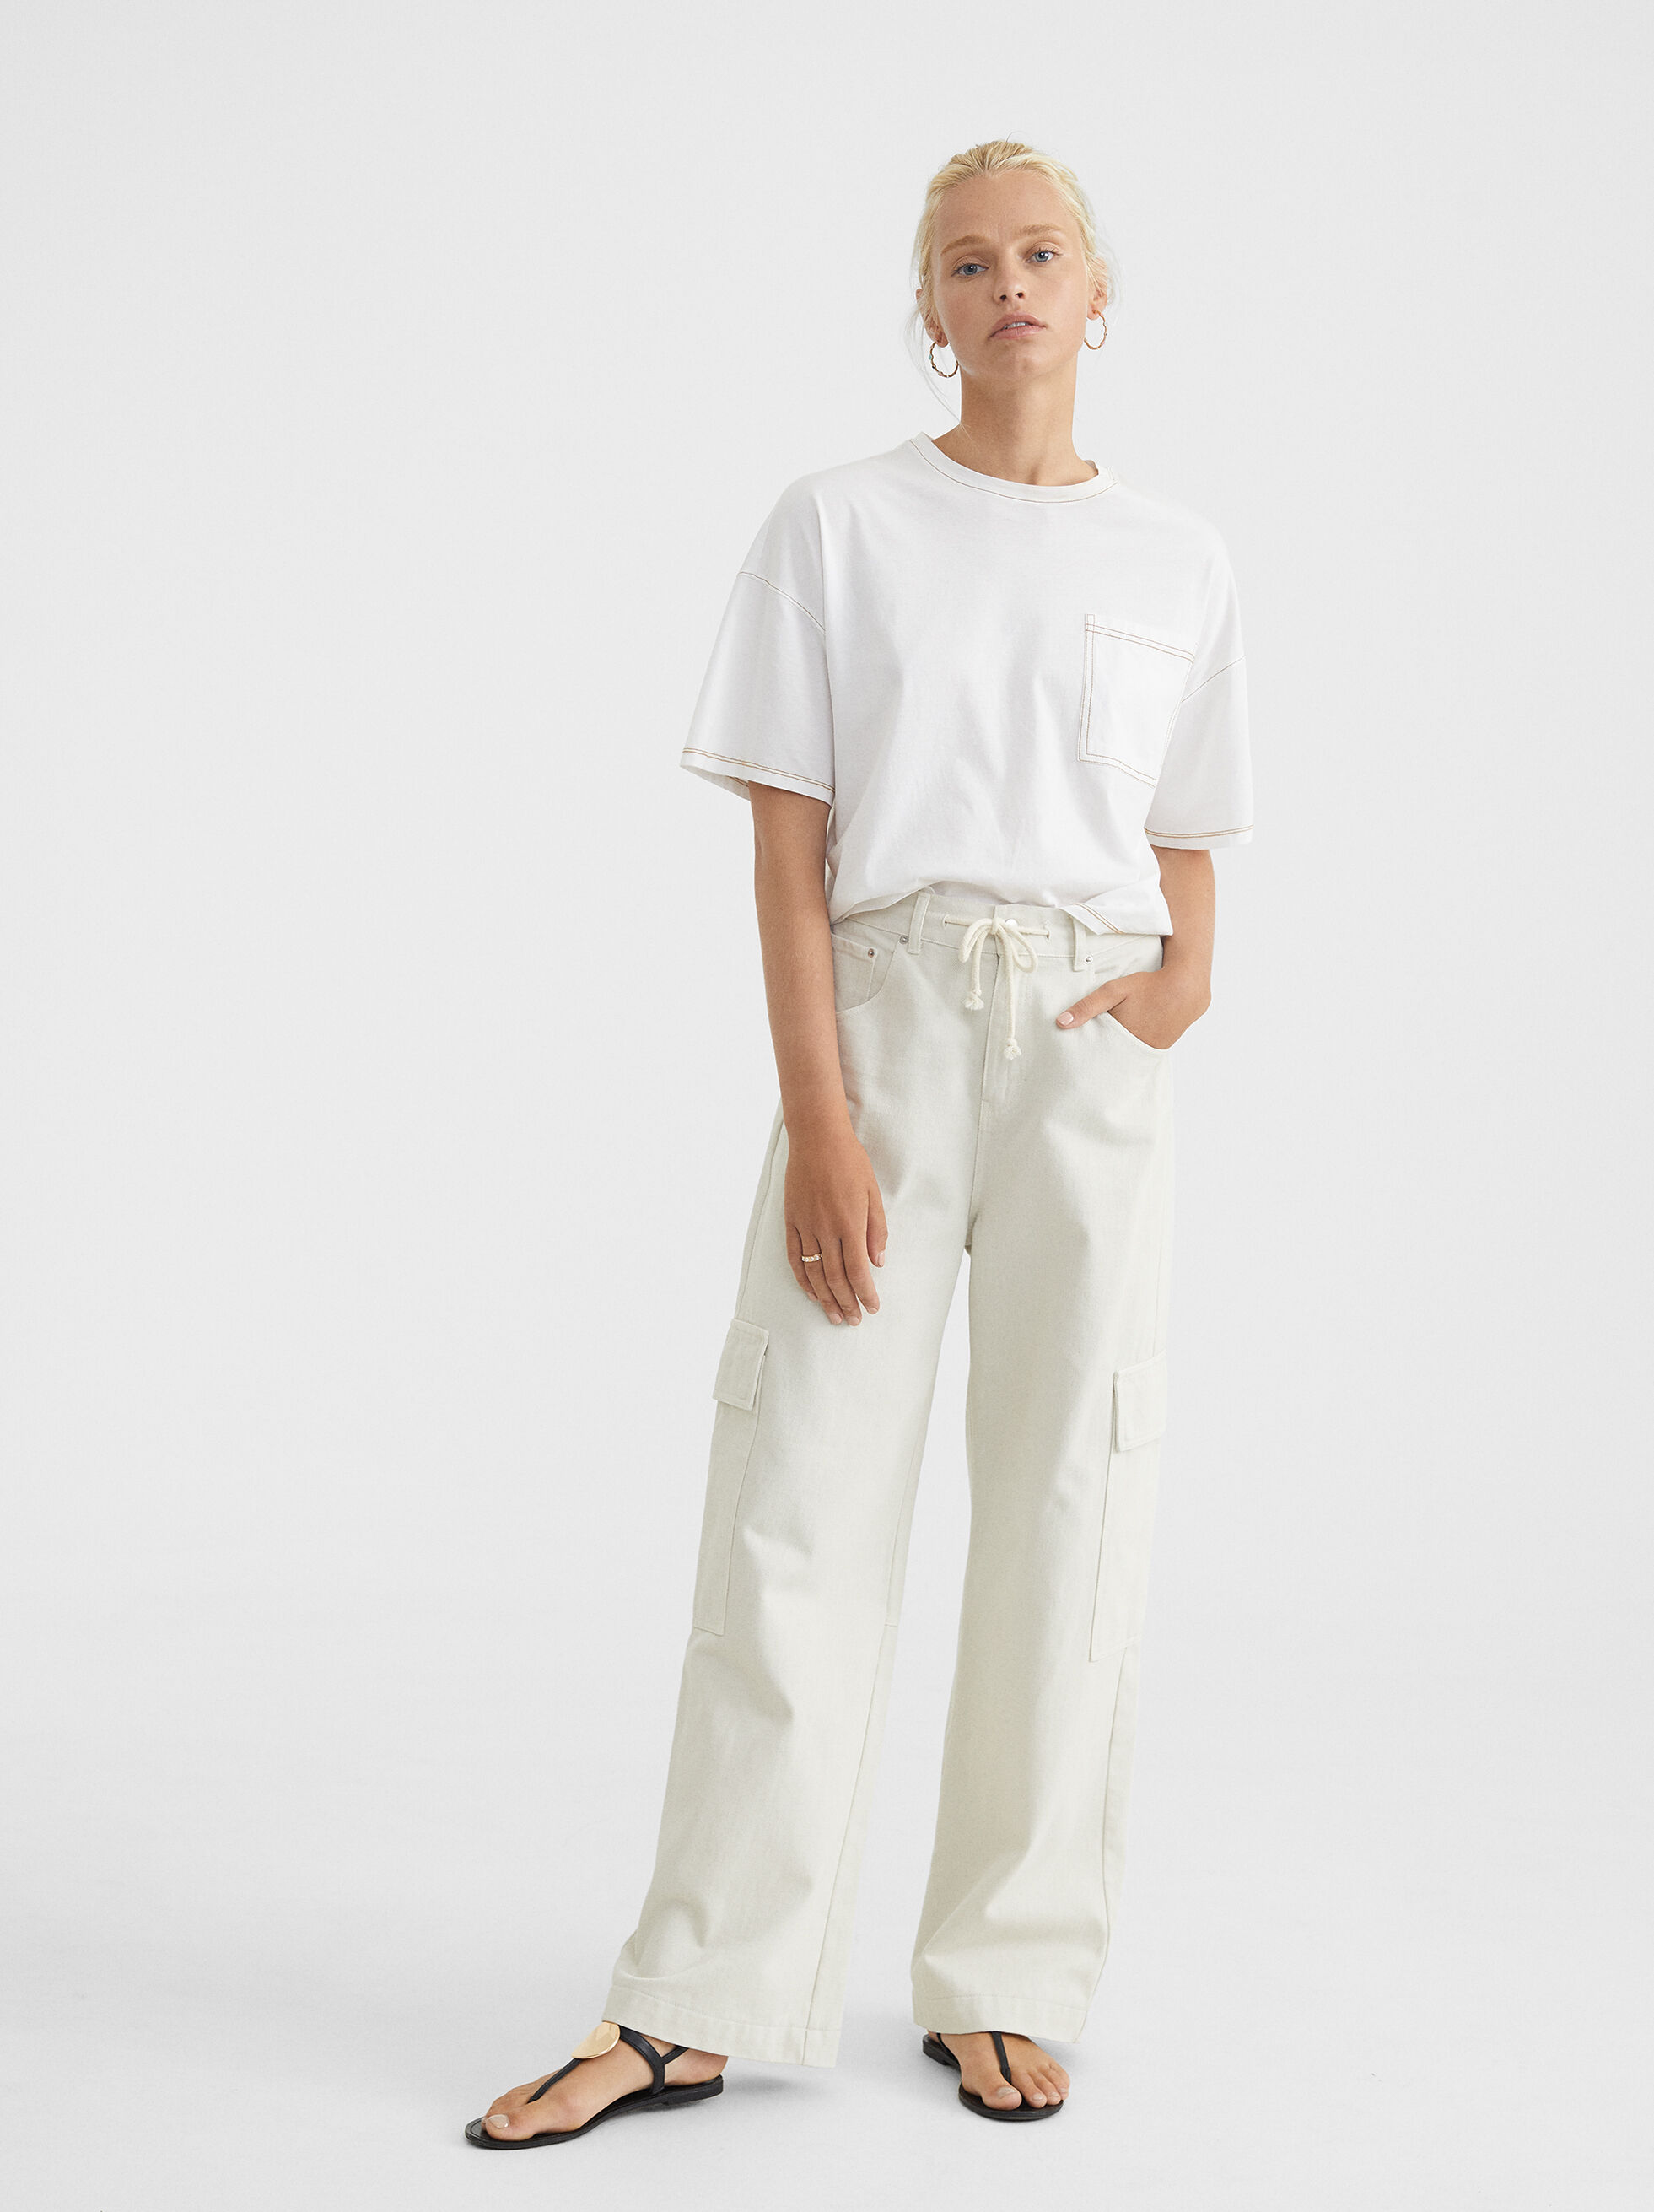 Oversized T-Shirt With Pocket, , hi-res